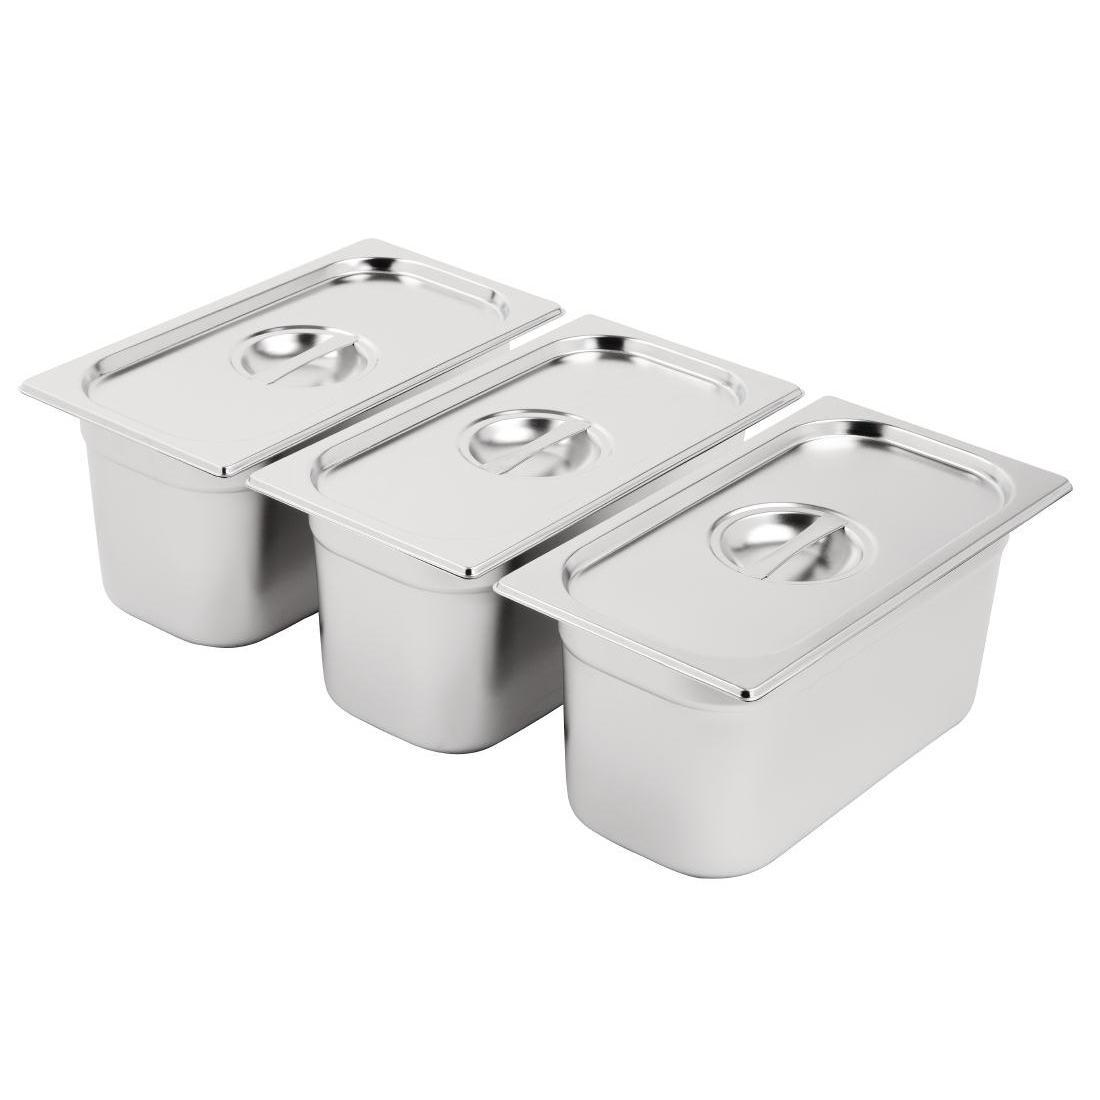 Vogue Stainless Steel Gastronorm Pan Set 3 x 1/3 with Lids - SA242